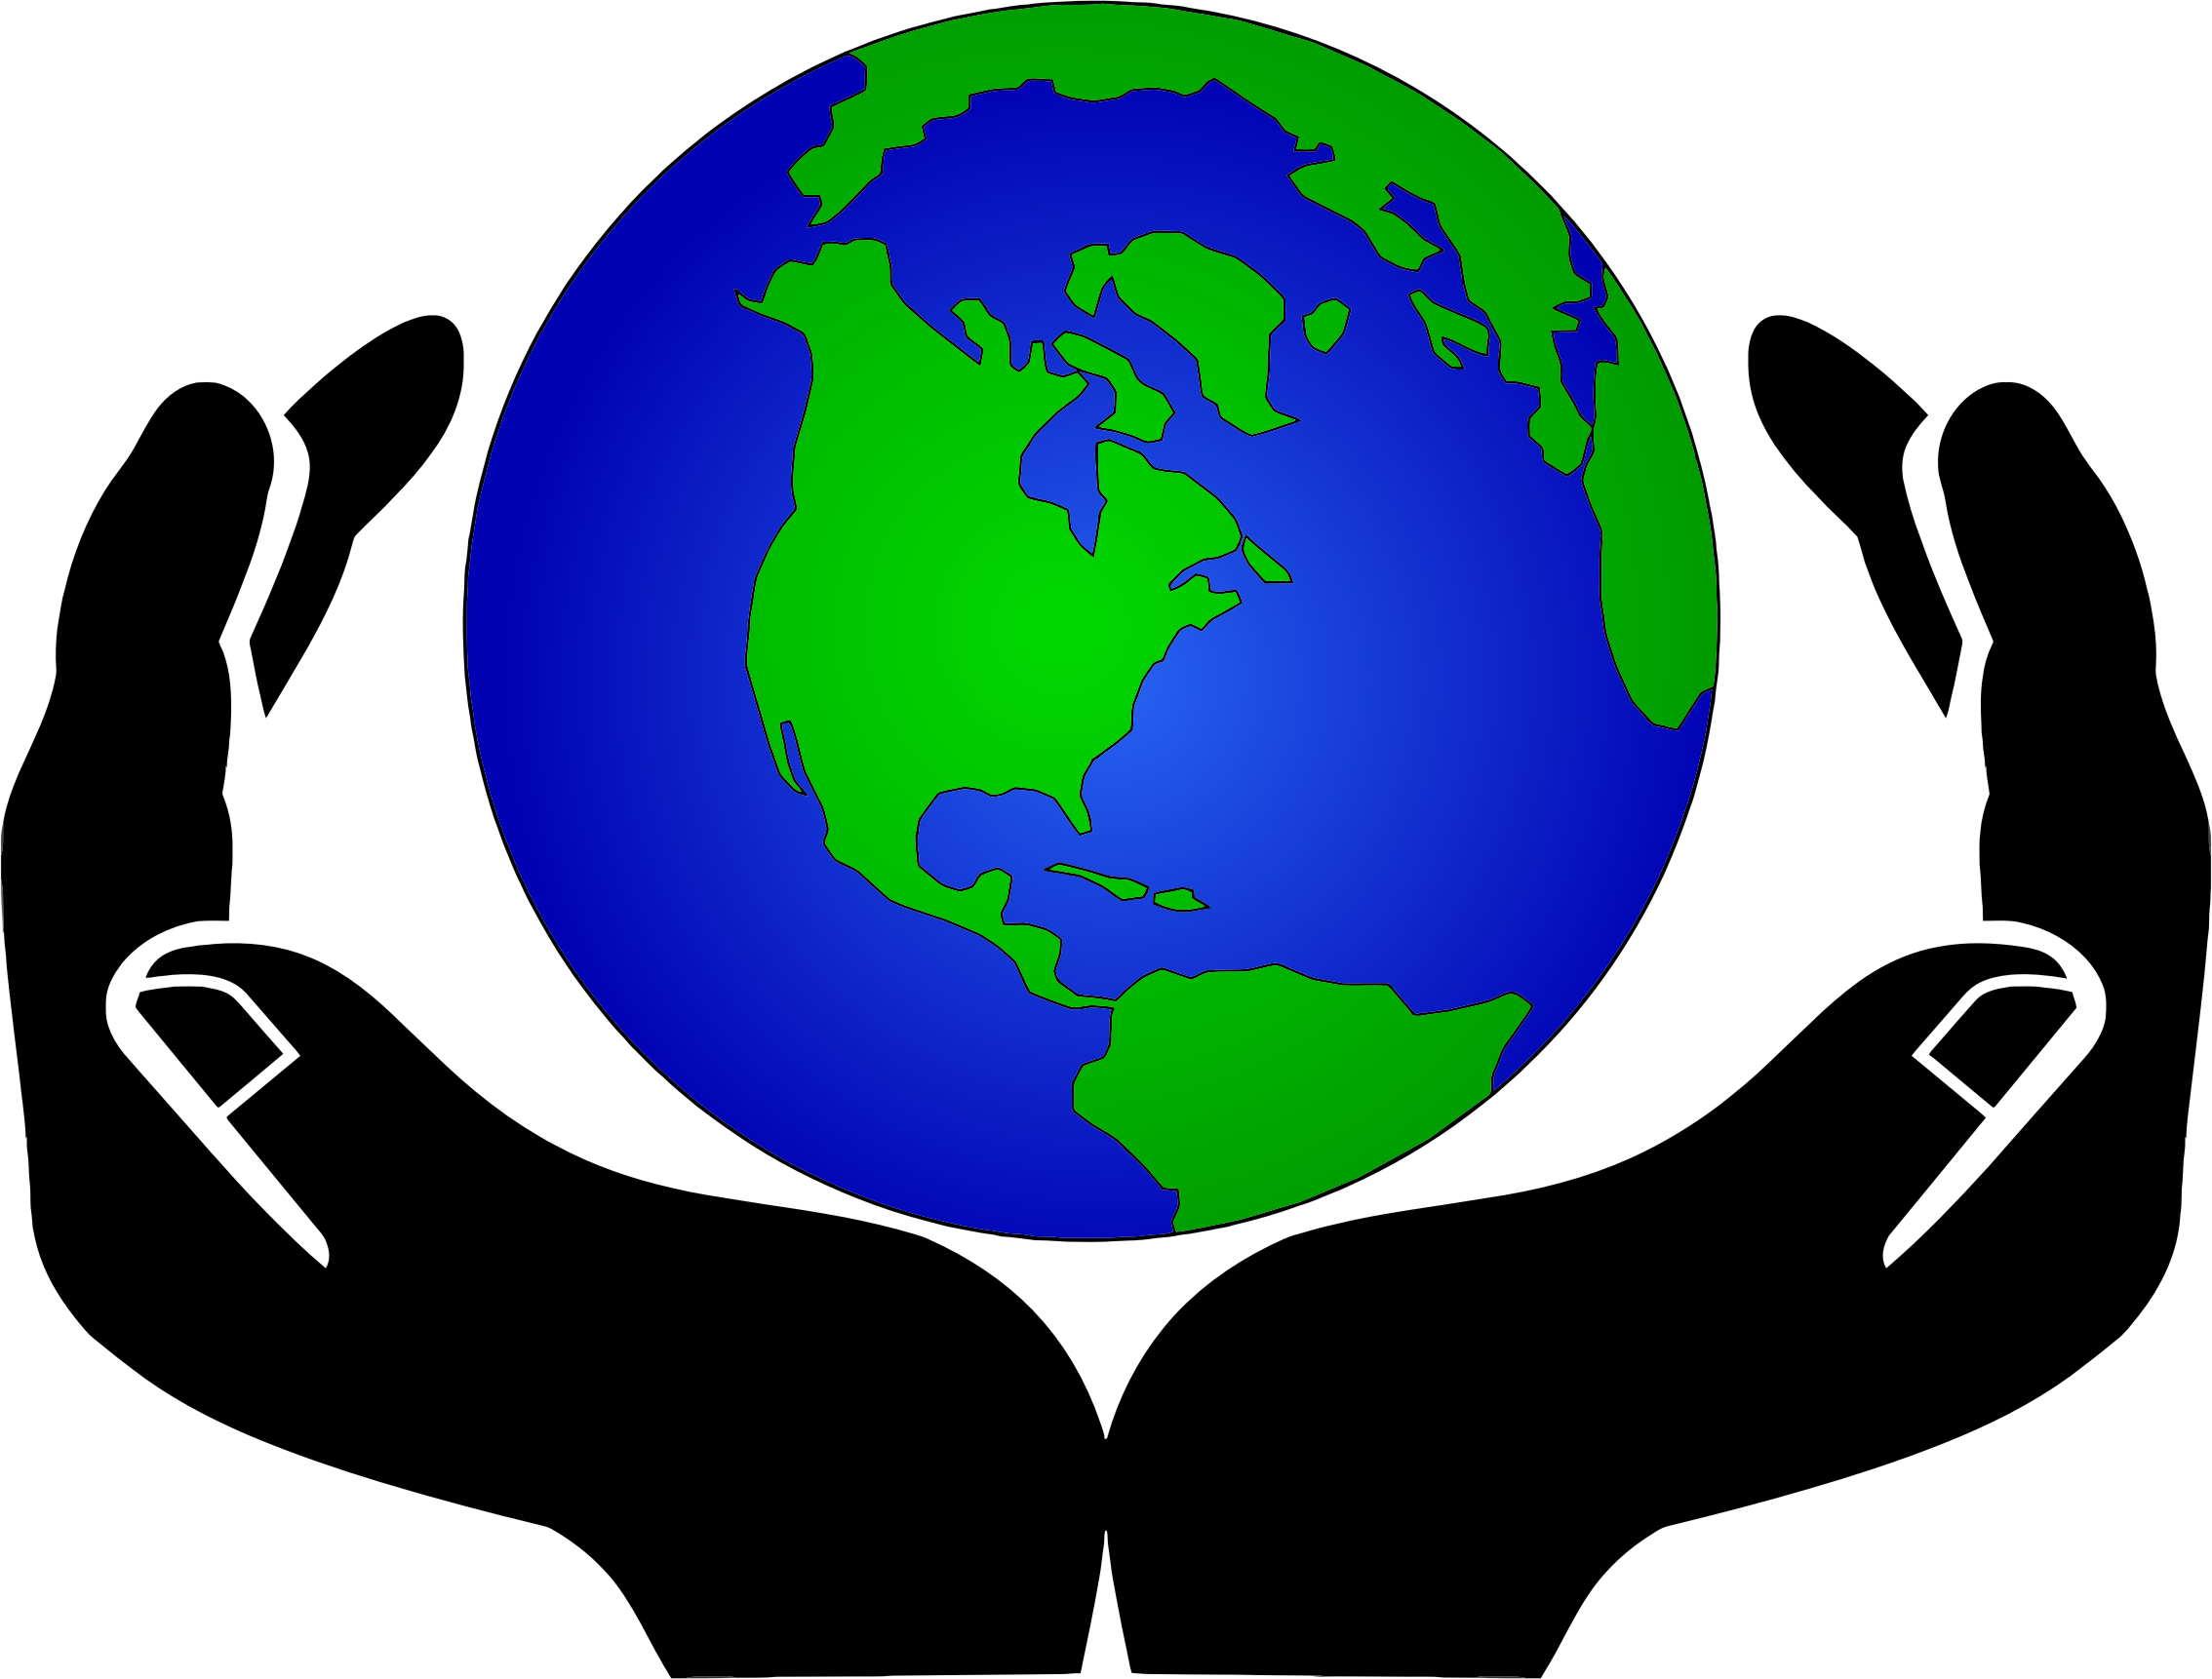 Climate drawing clipart. Peace at getdrawings com